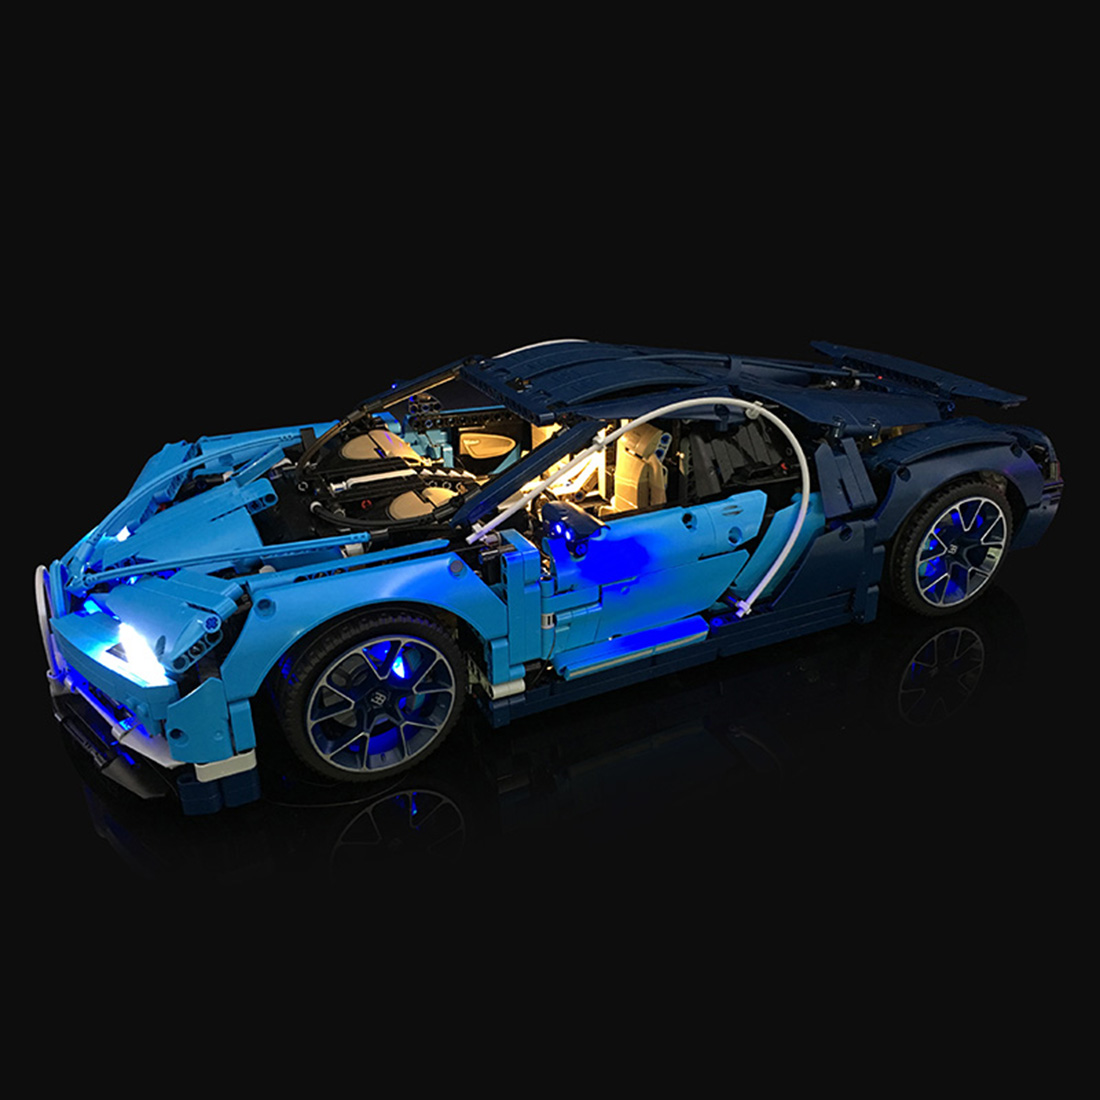 42083 Lithium Powered LED Light Building Block Accessory Refit Kit for 42083 Super Car Construction Wireless Charging Version